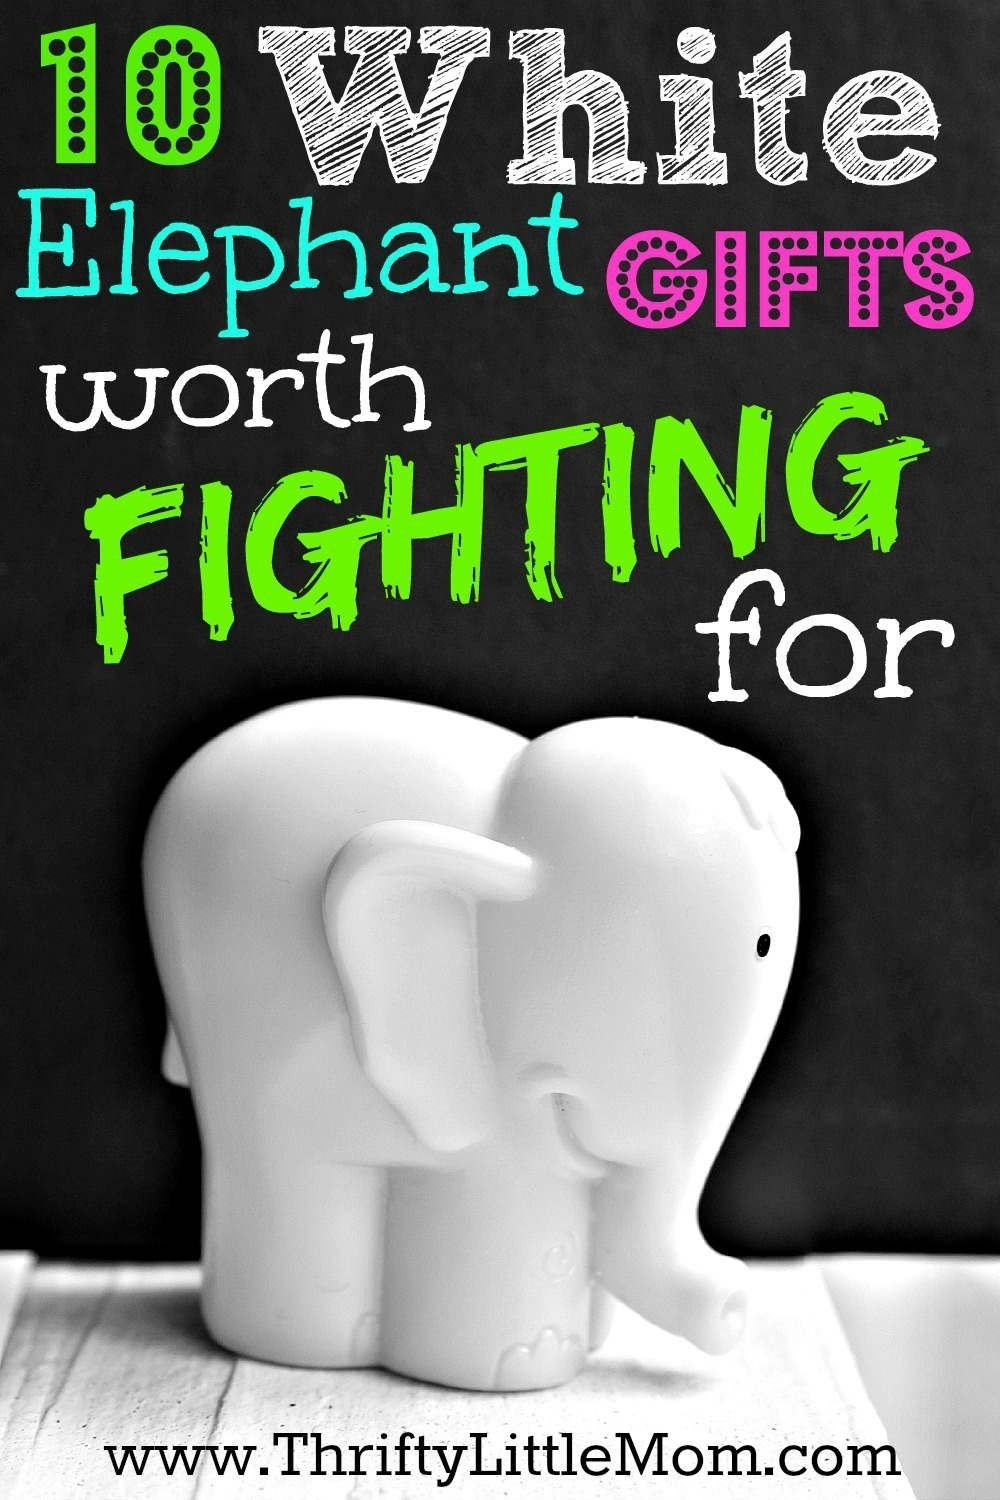 10 Attractive Office Yankee Swap Gift Ideas white elephant gifts worth fighting for yankee swap ideas white 30 2020